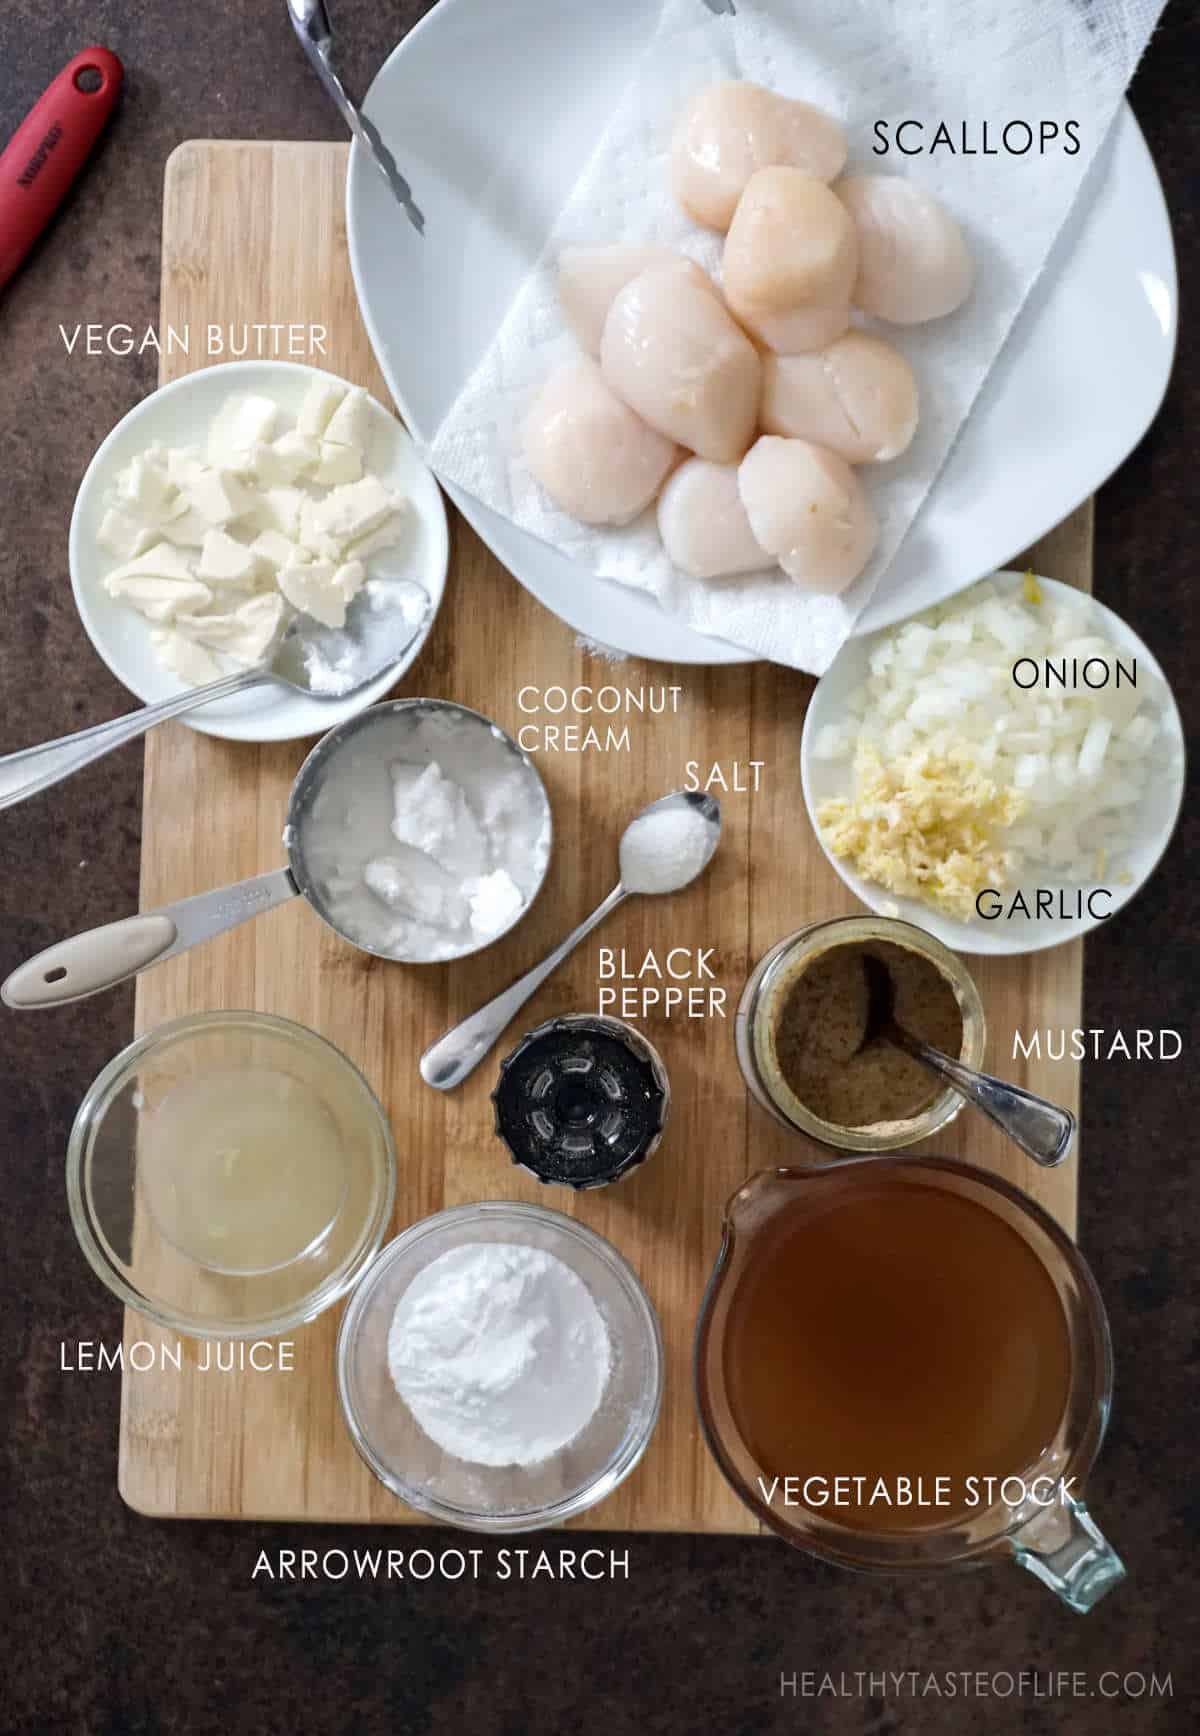 Ingredients for making scallops in a dairy free cream sauce.